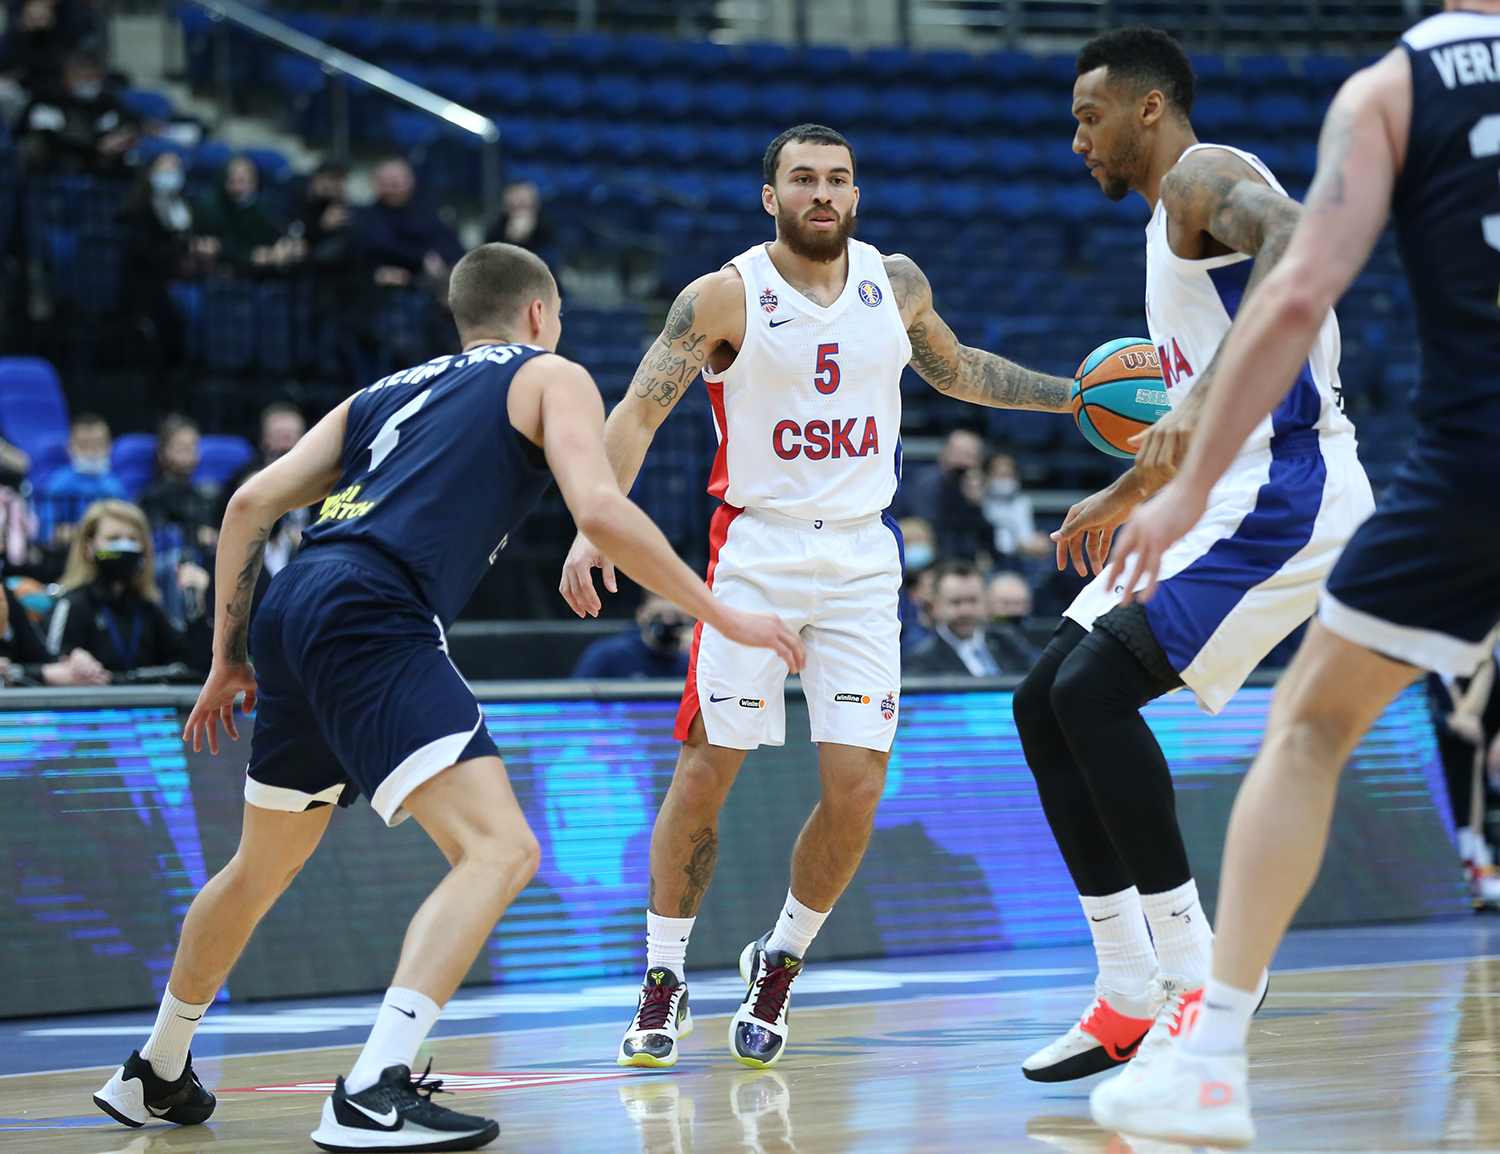 CSKA pace up and outclass Tsmoki in Minsk